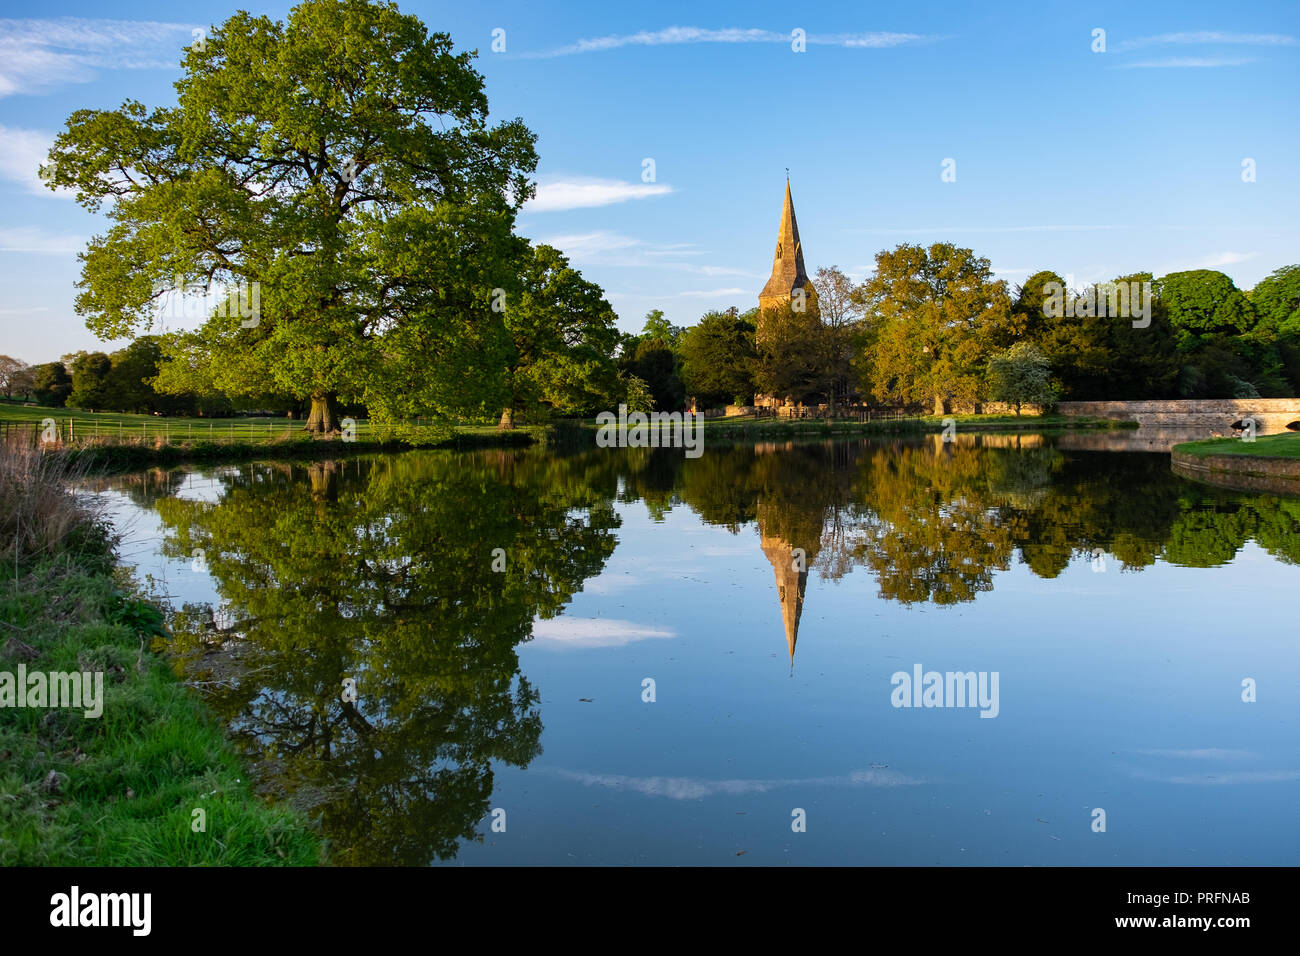 Broughton Castle and church, near Banbury, home of the Fiennes family in golden evening light with reflections in the still water of the moat. Stock Photo